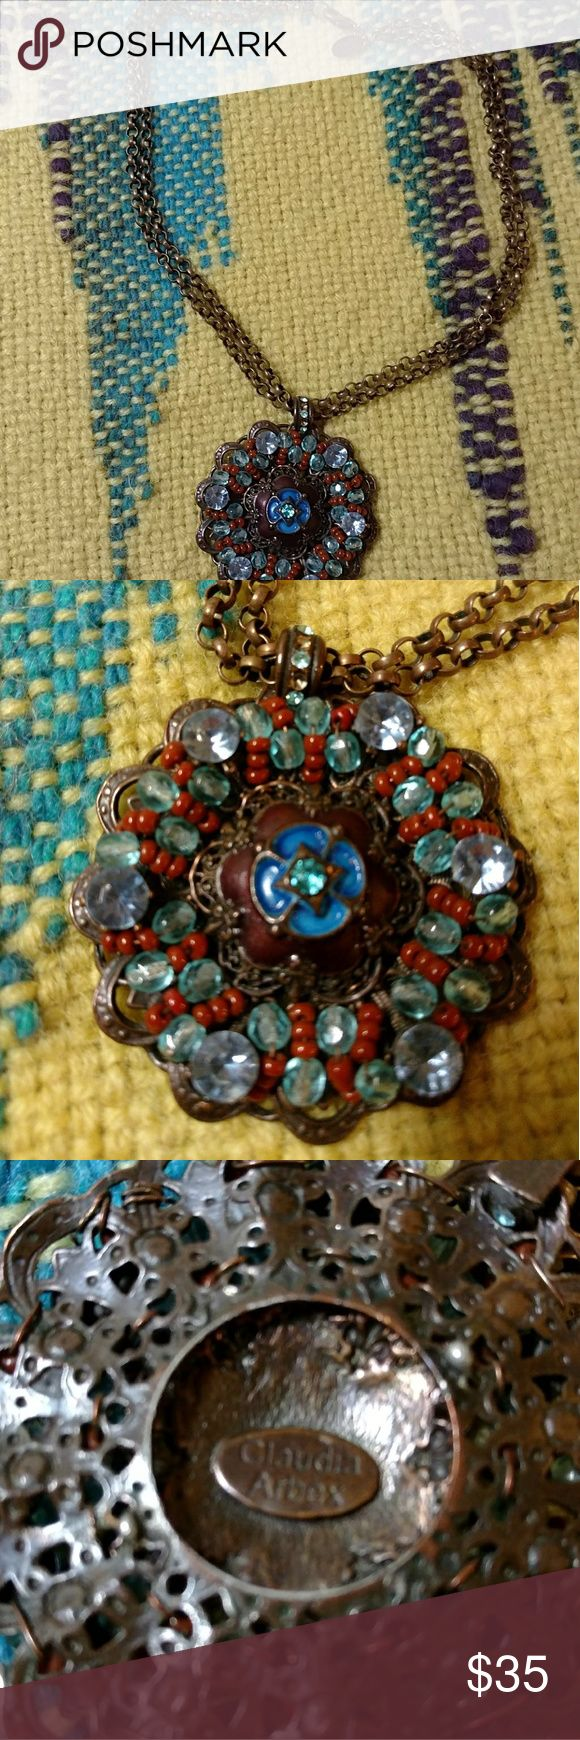 """Claudia Arbex Necklace Colorful necklace on a double 15"""" chain.  Artist markings on back of necklace and on small metal tag by clasp. Claudia Arbex Jewelry Necklaces"""